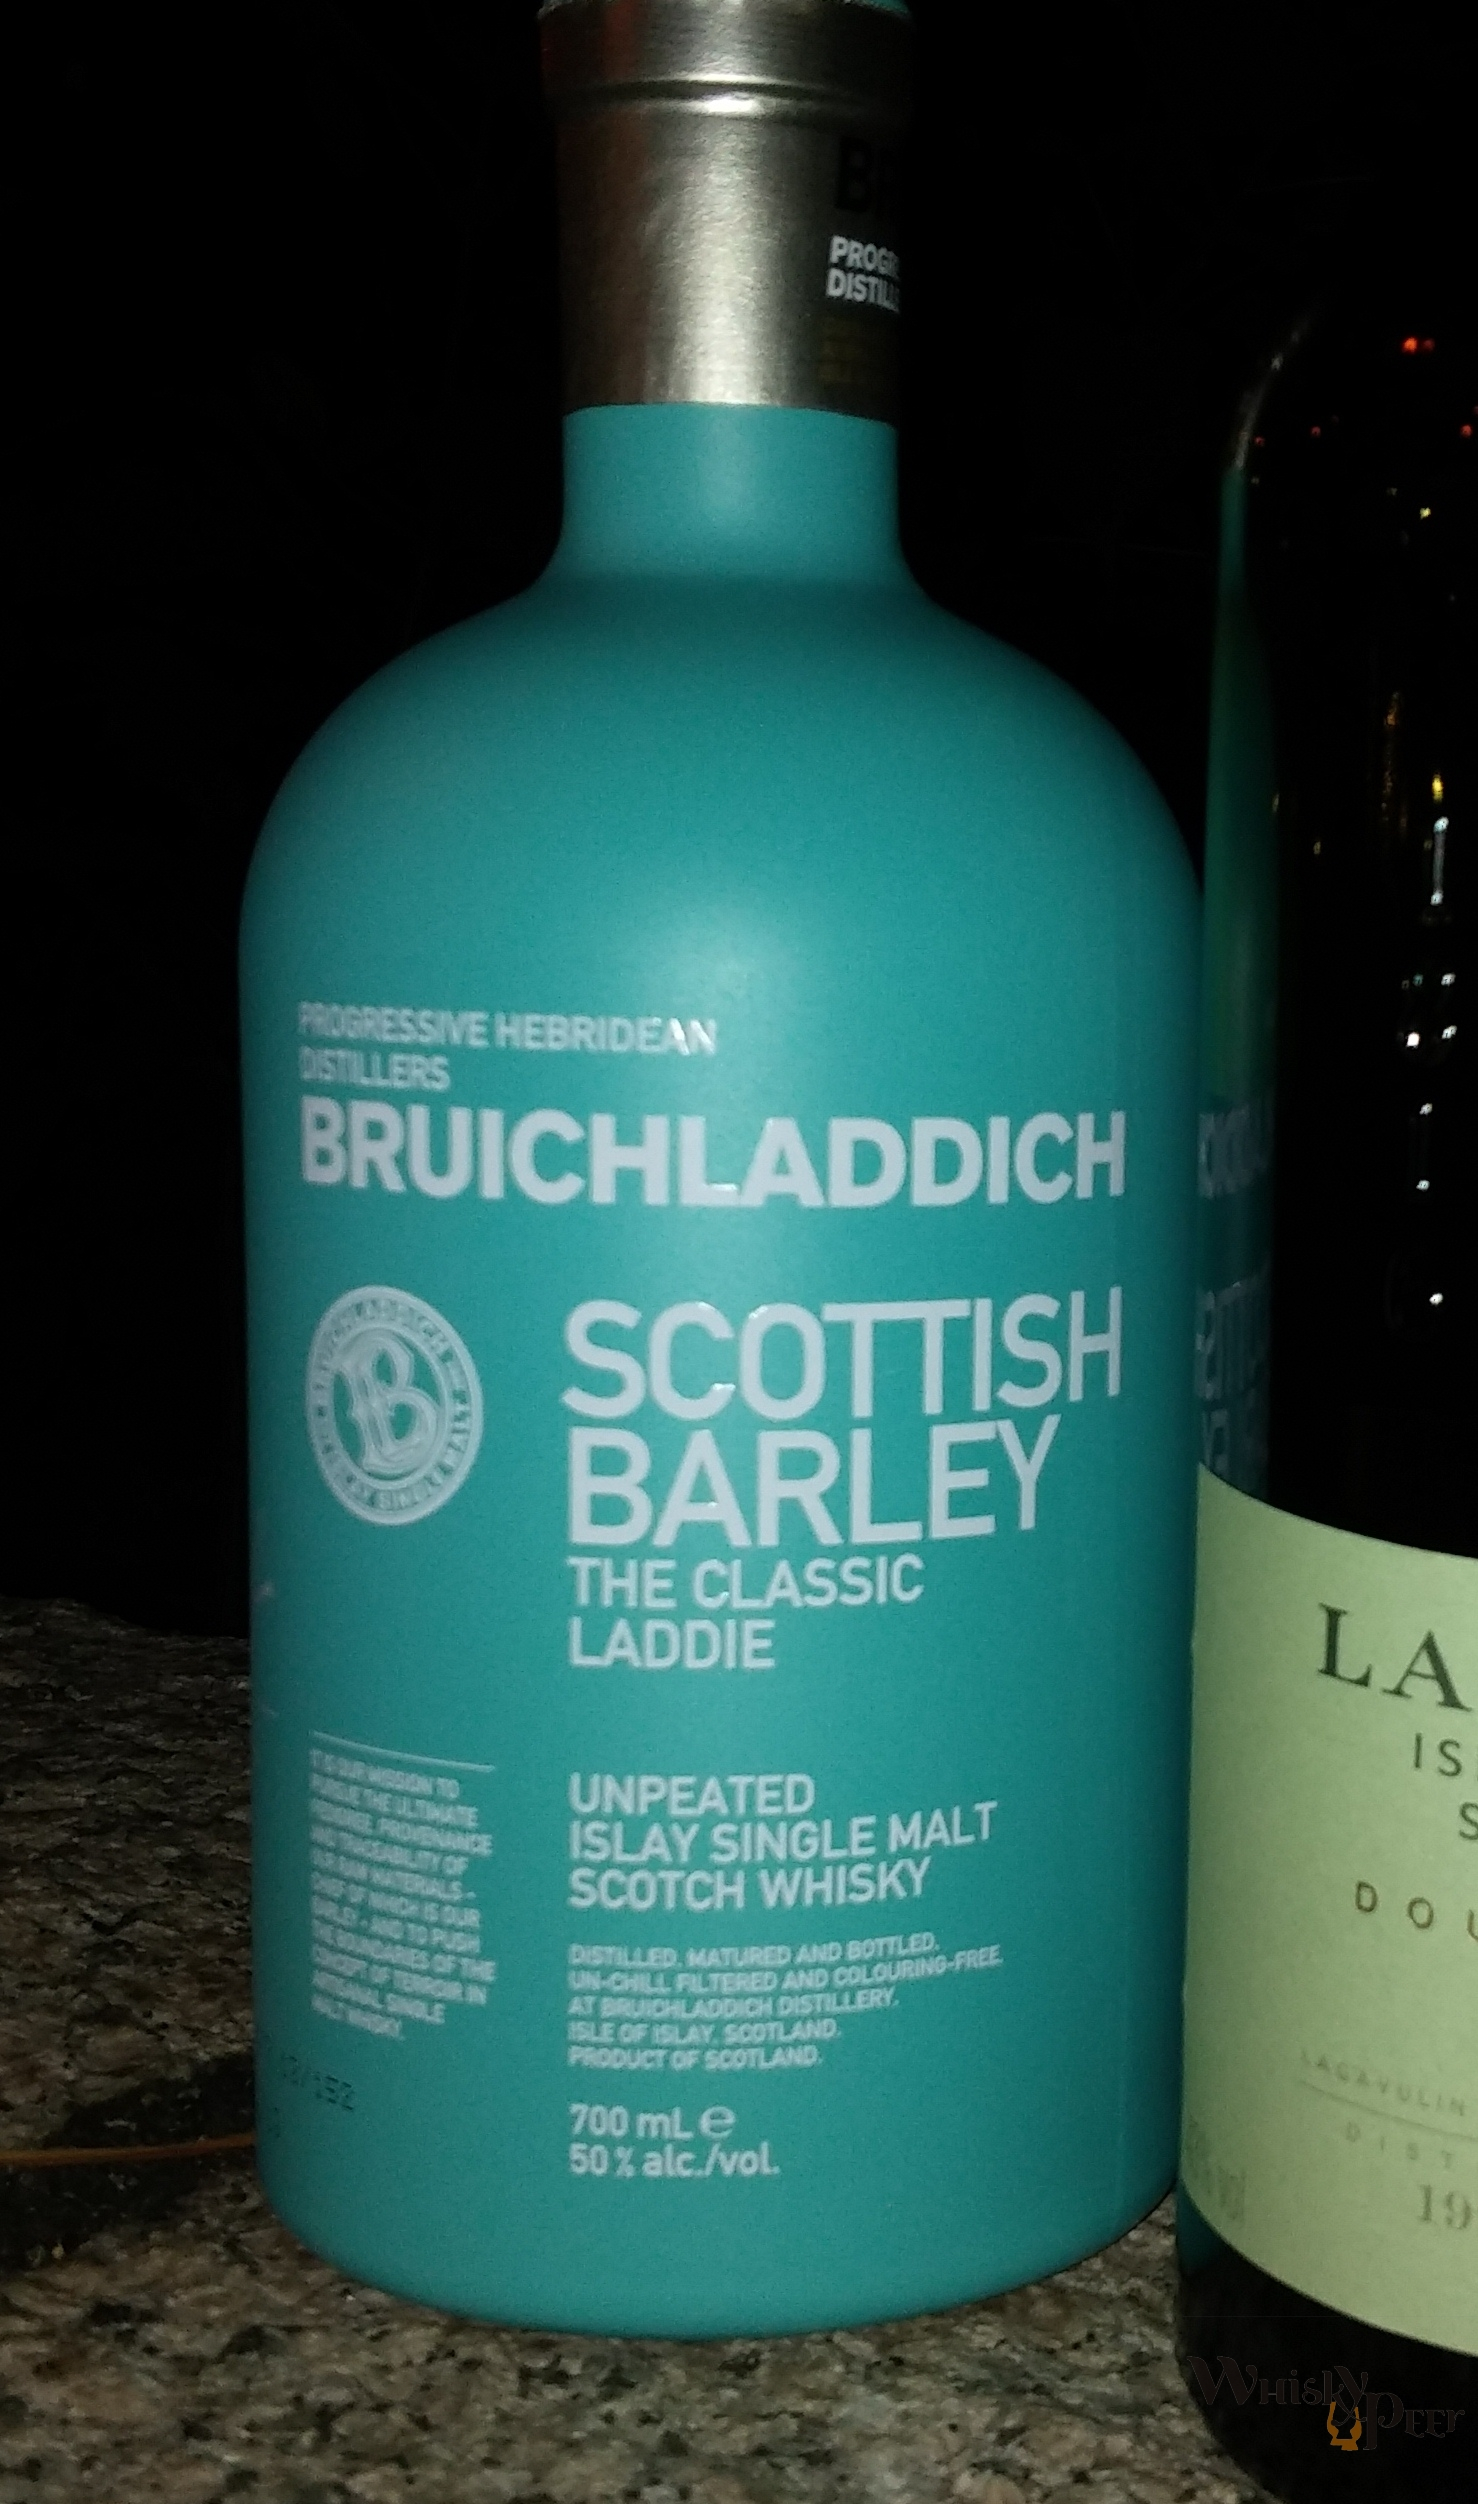 The Classic Laddie